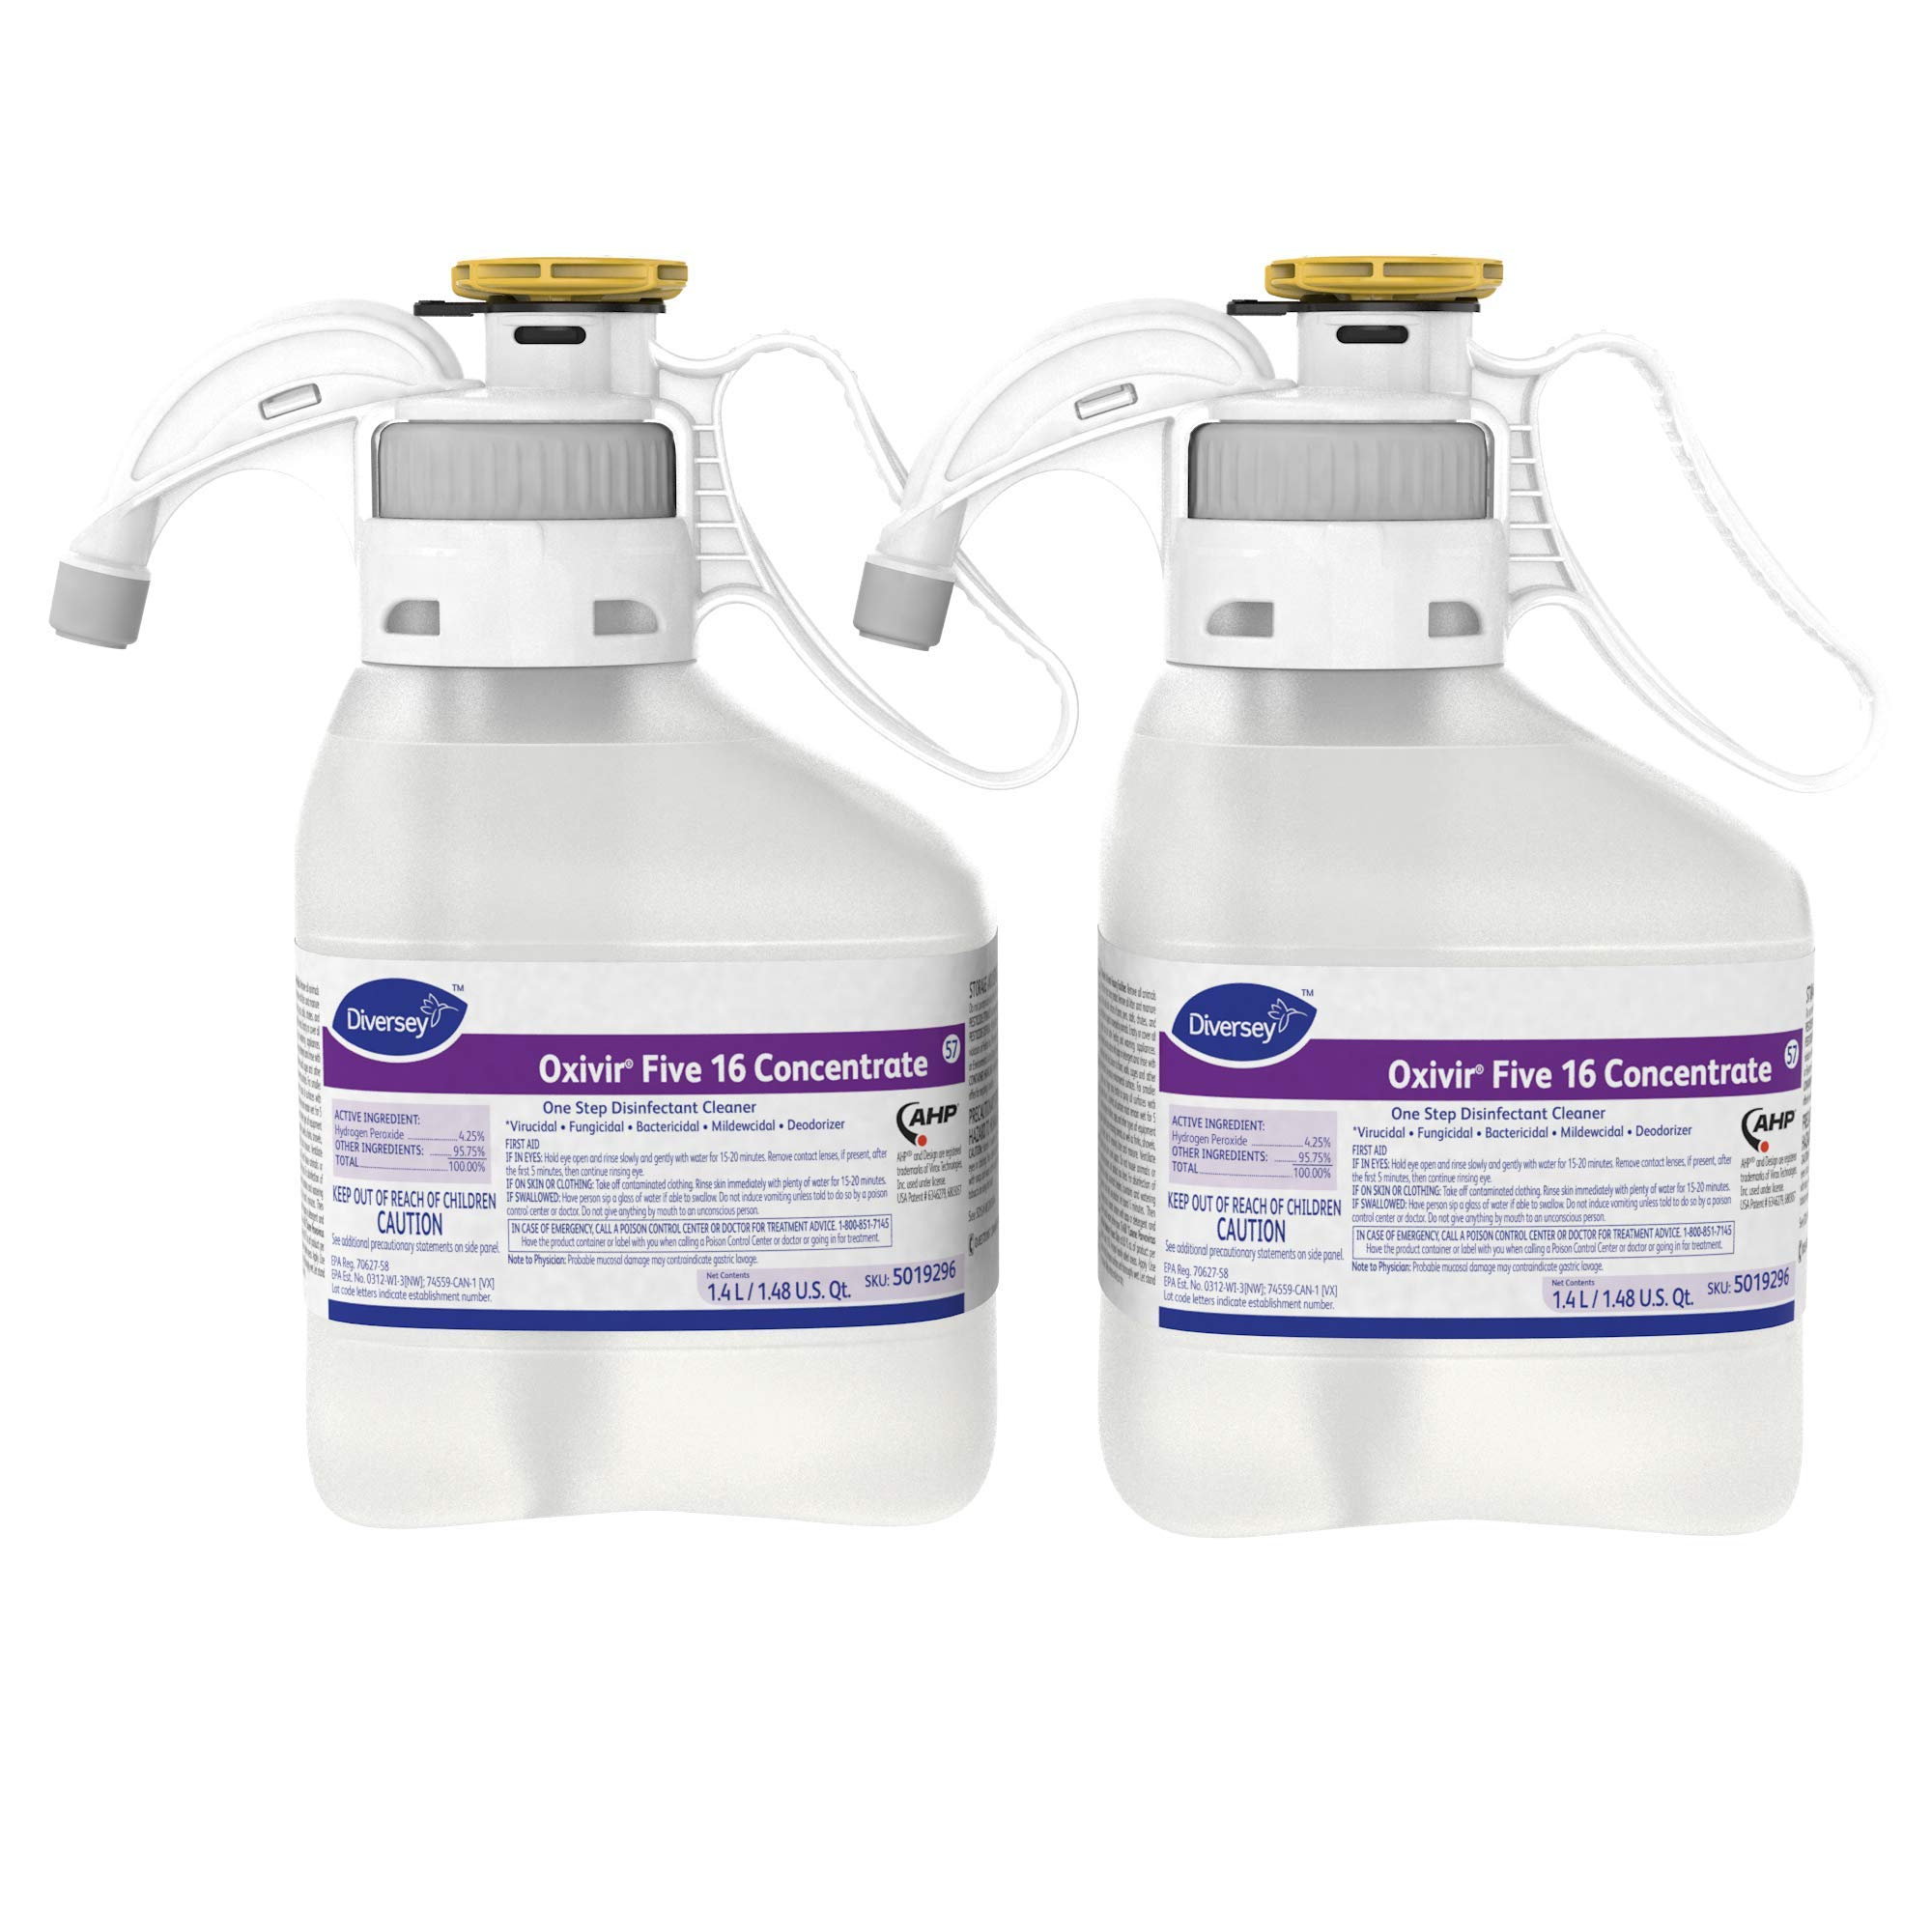 Diversey Oxivir Five 16 Concentrate Disinfectant Cleaner (1.4-Liter, Case of 2)